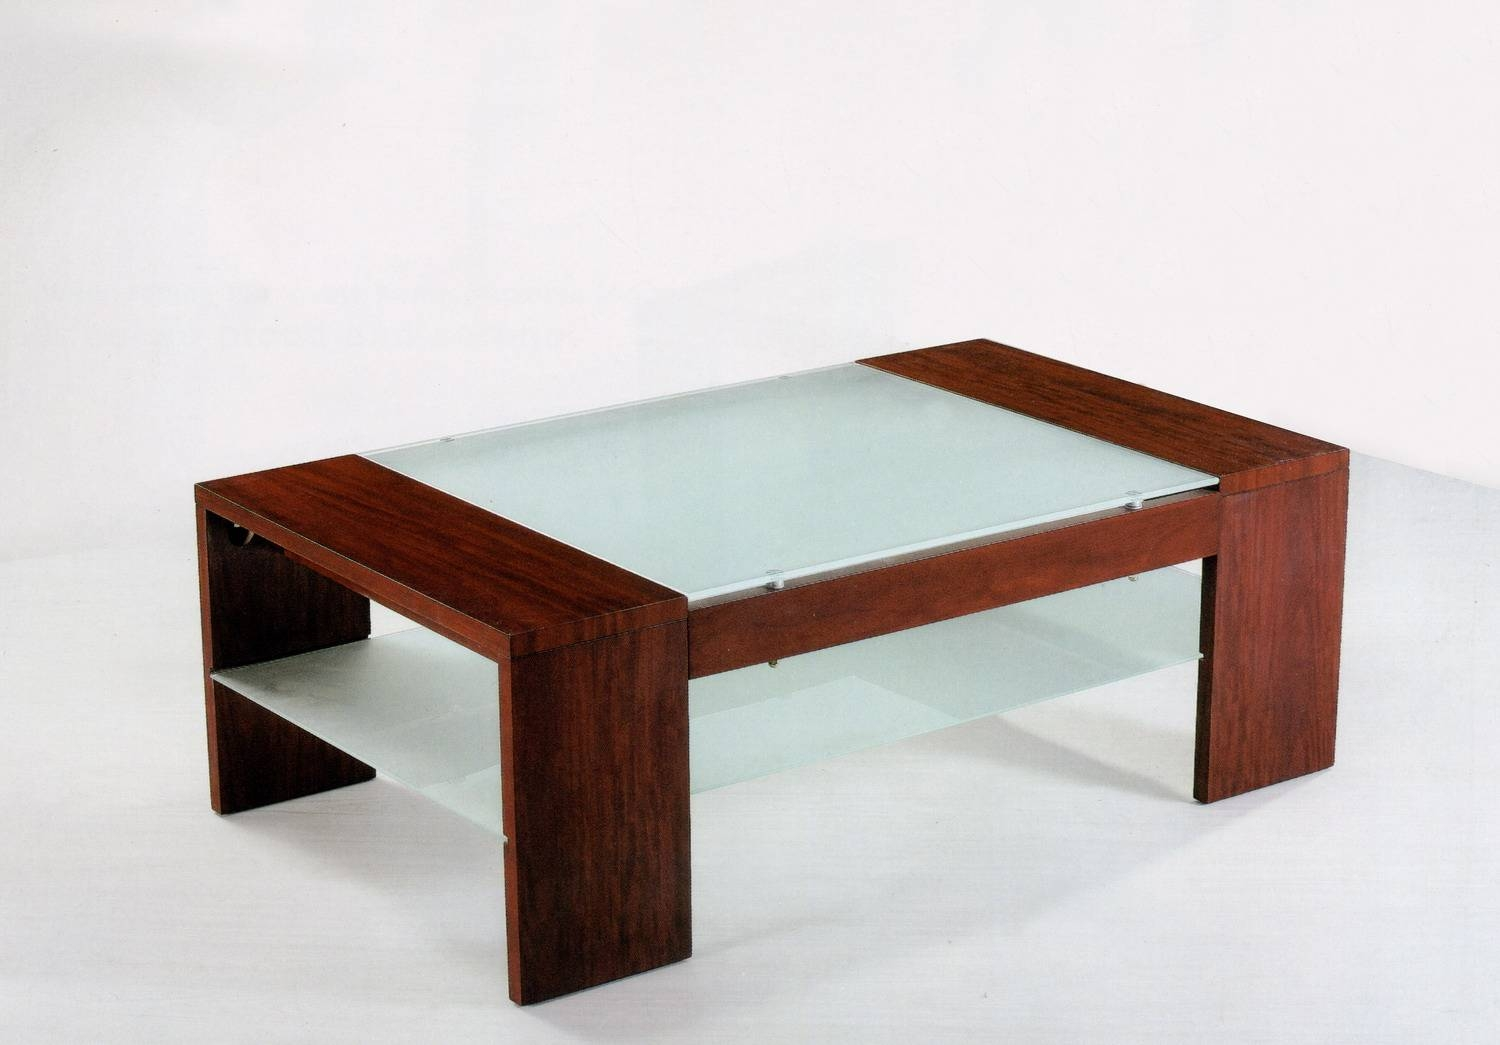 Wood And Glass Coffee Table Ideas | Coffee Tables Decoration with regard to Black Wood And Glass Coffee Tables (Image 29 of 30)